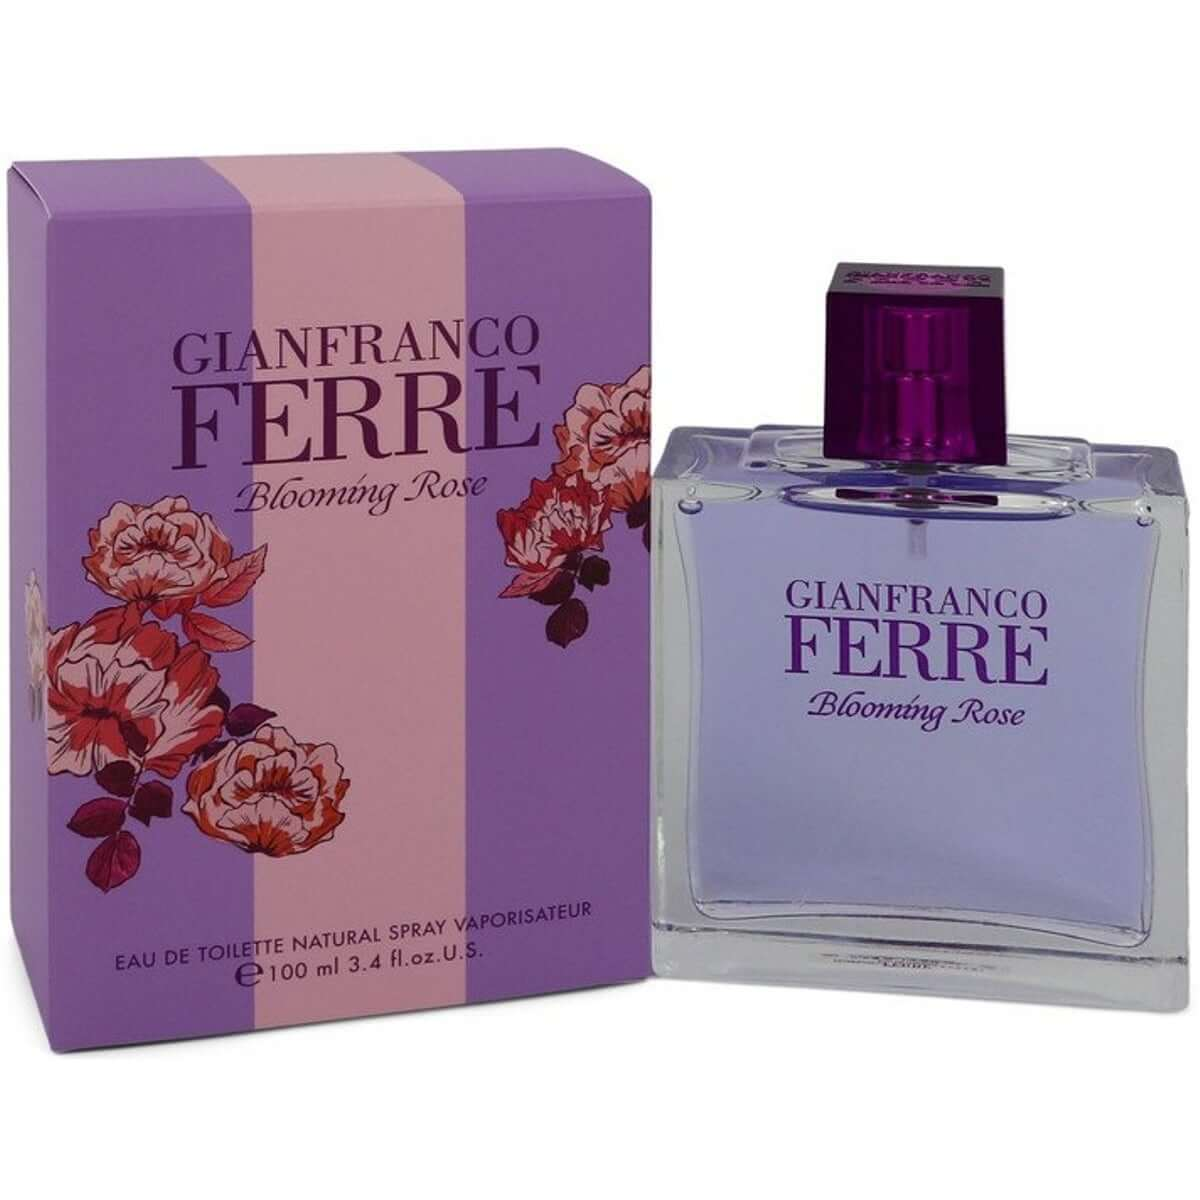 Blooming Rose by Gianfranco Ferre for women EDT 3.3 / 3.4 oz New in box